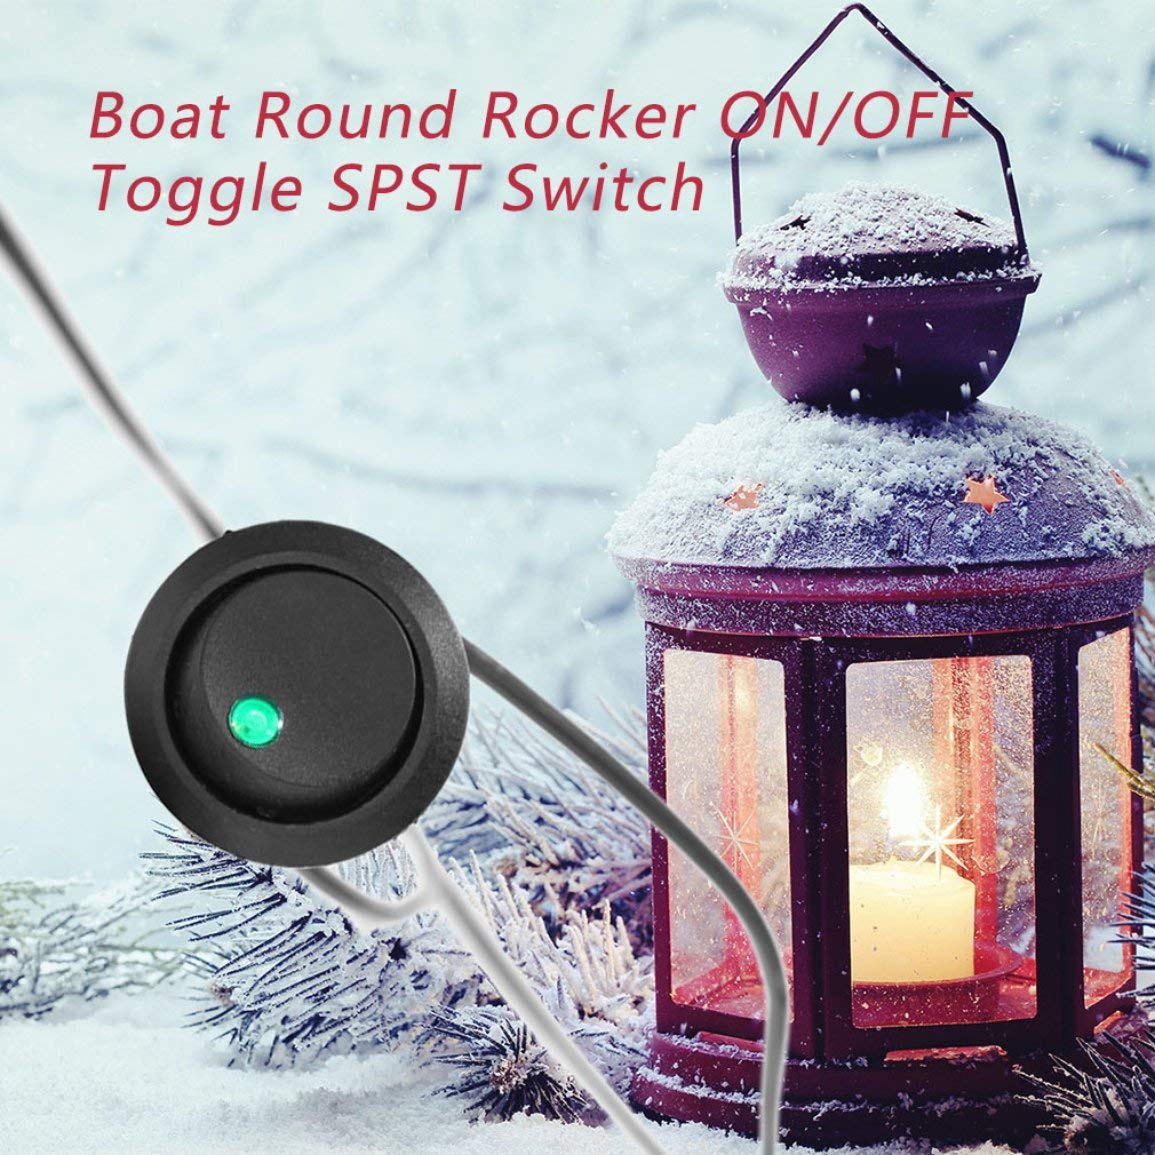 Led Dot Light 12V Car Auto Boat Round Rocker ON//Off Toggle SPST Switch Truck with a Keyhole Slot to Prevent Unwanted Rotation Color:Black